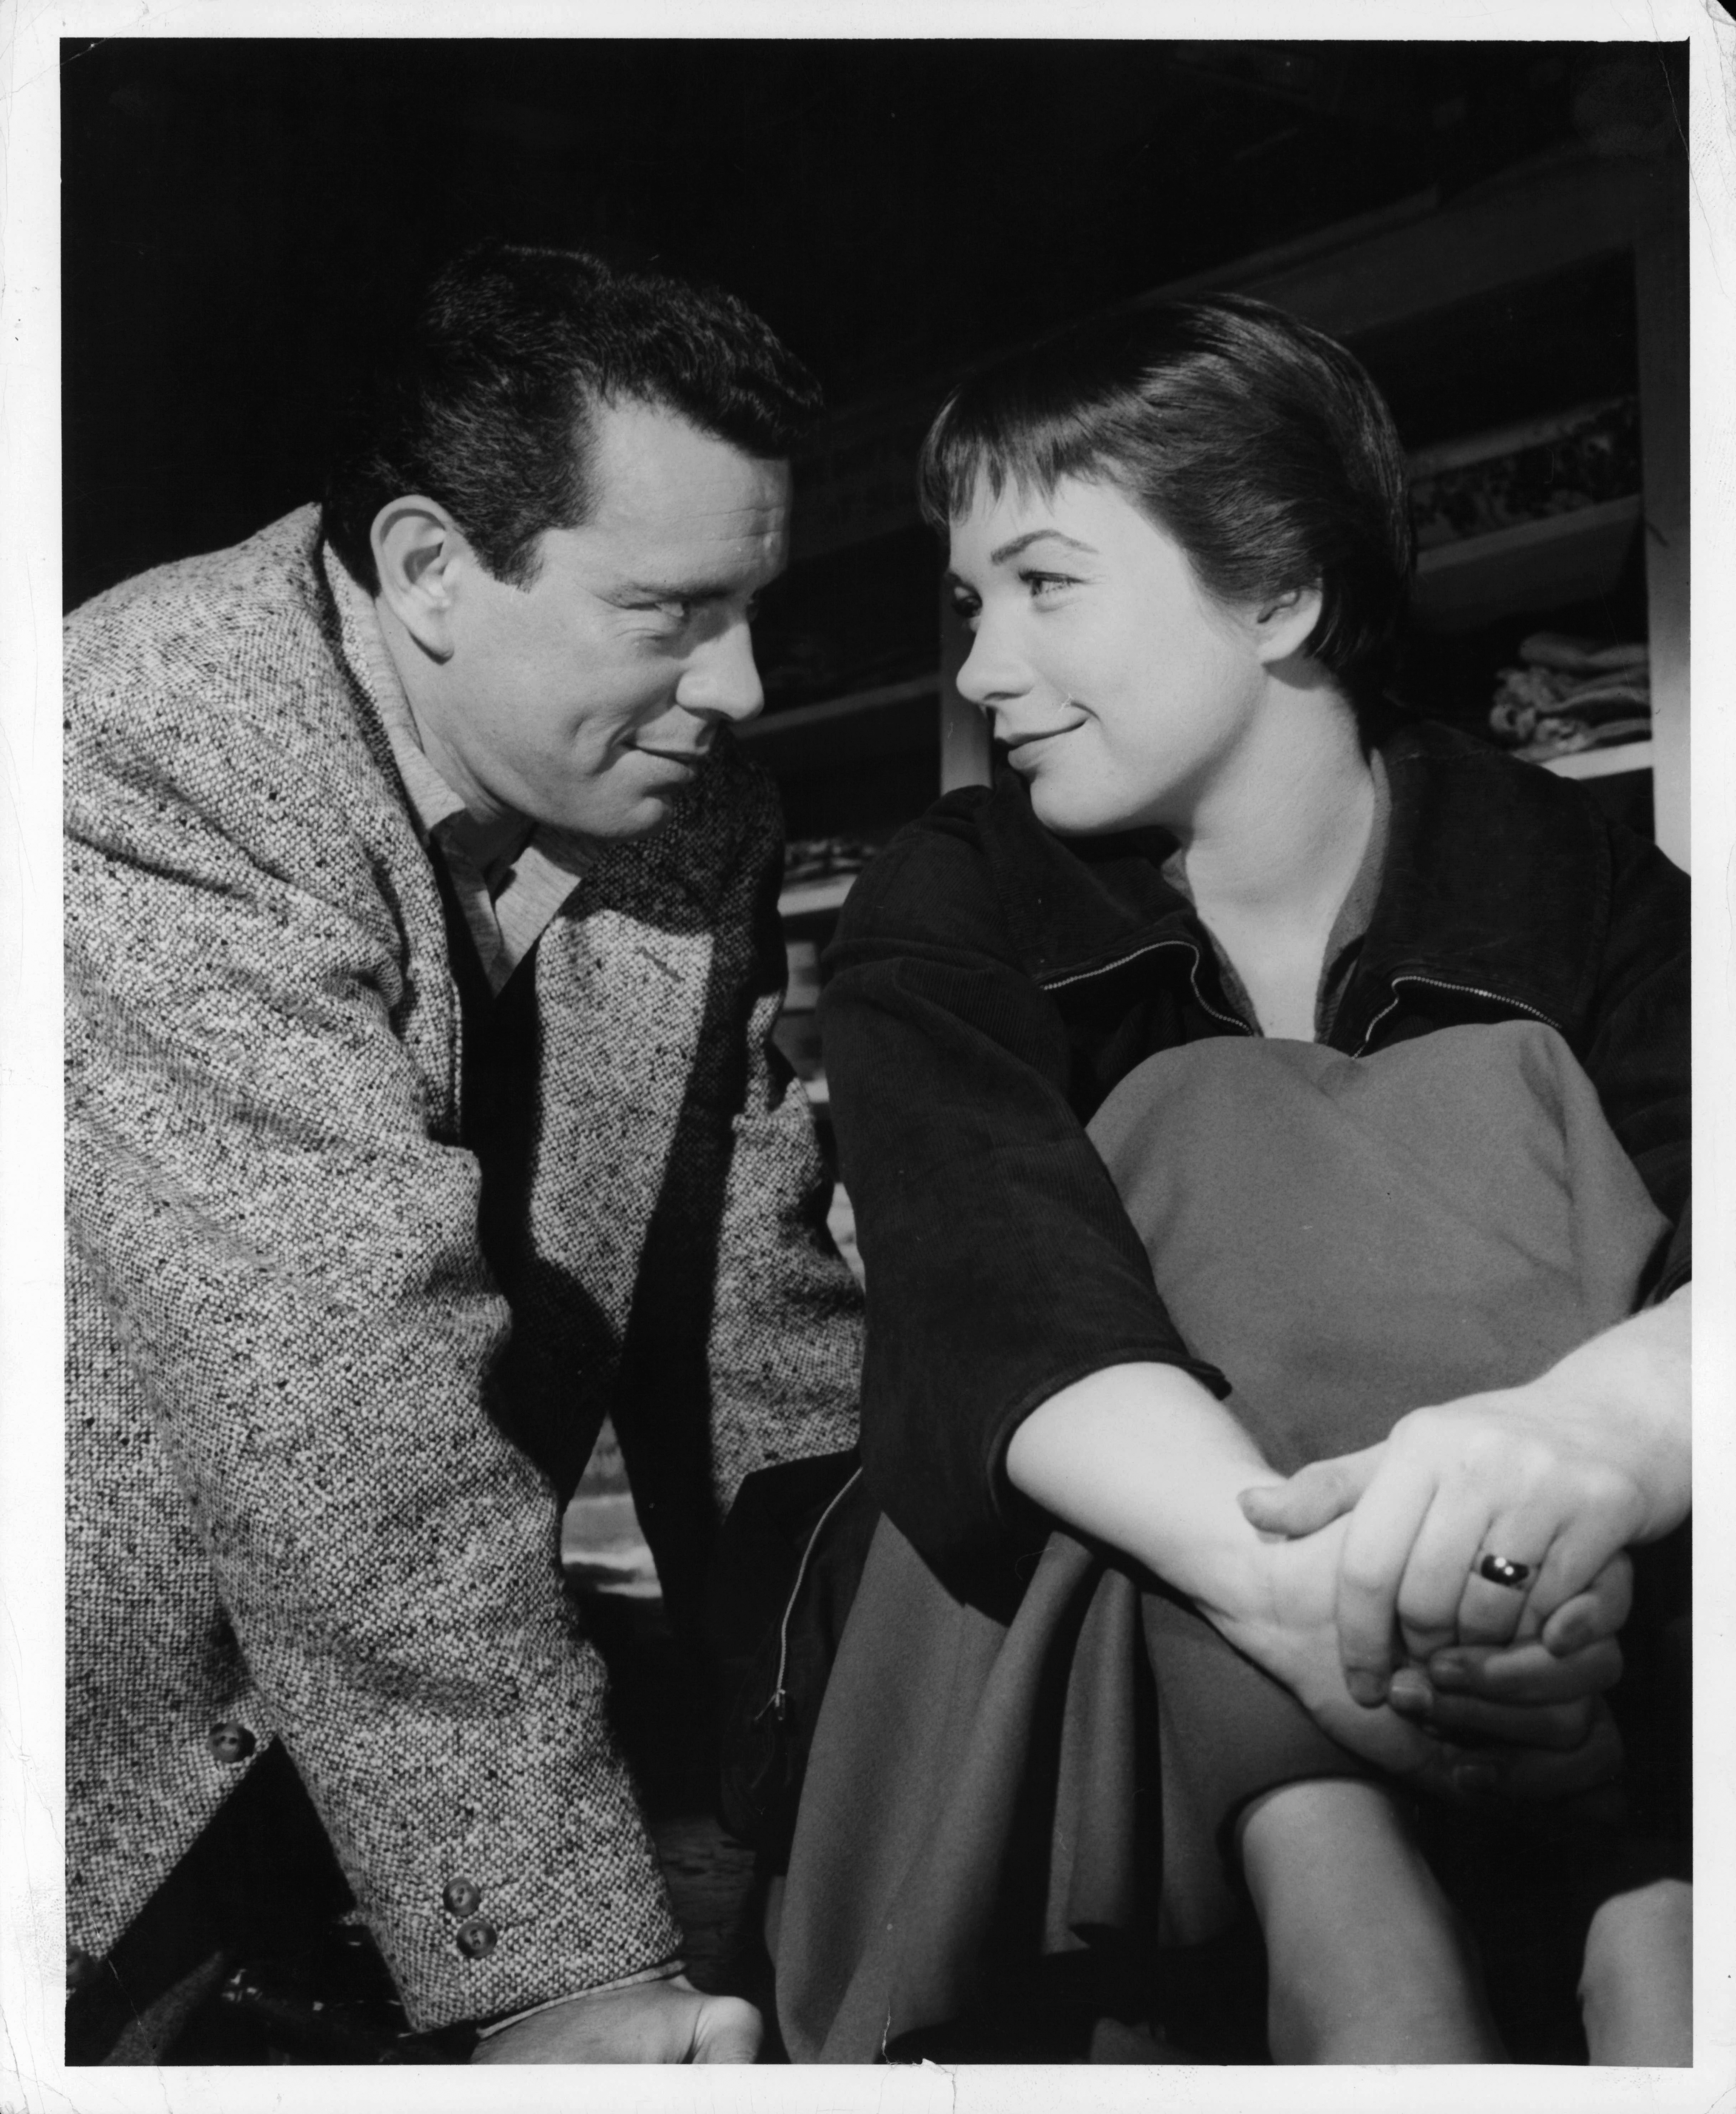 Shirley MacLaine and John Forsythe in The Trouble with Harry (1955)